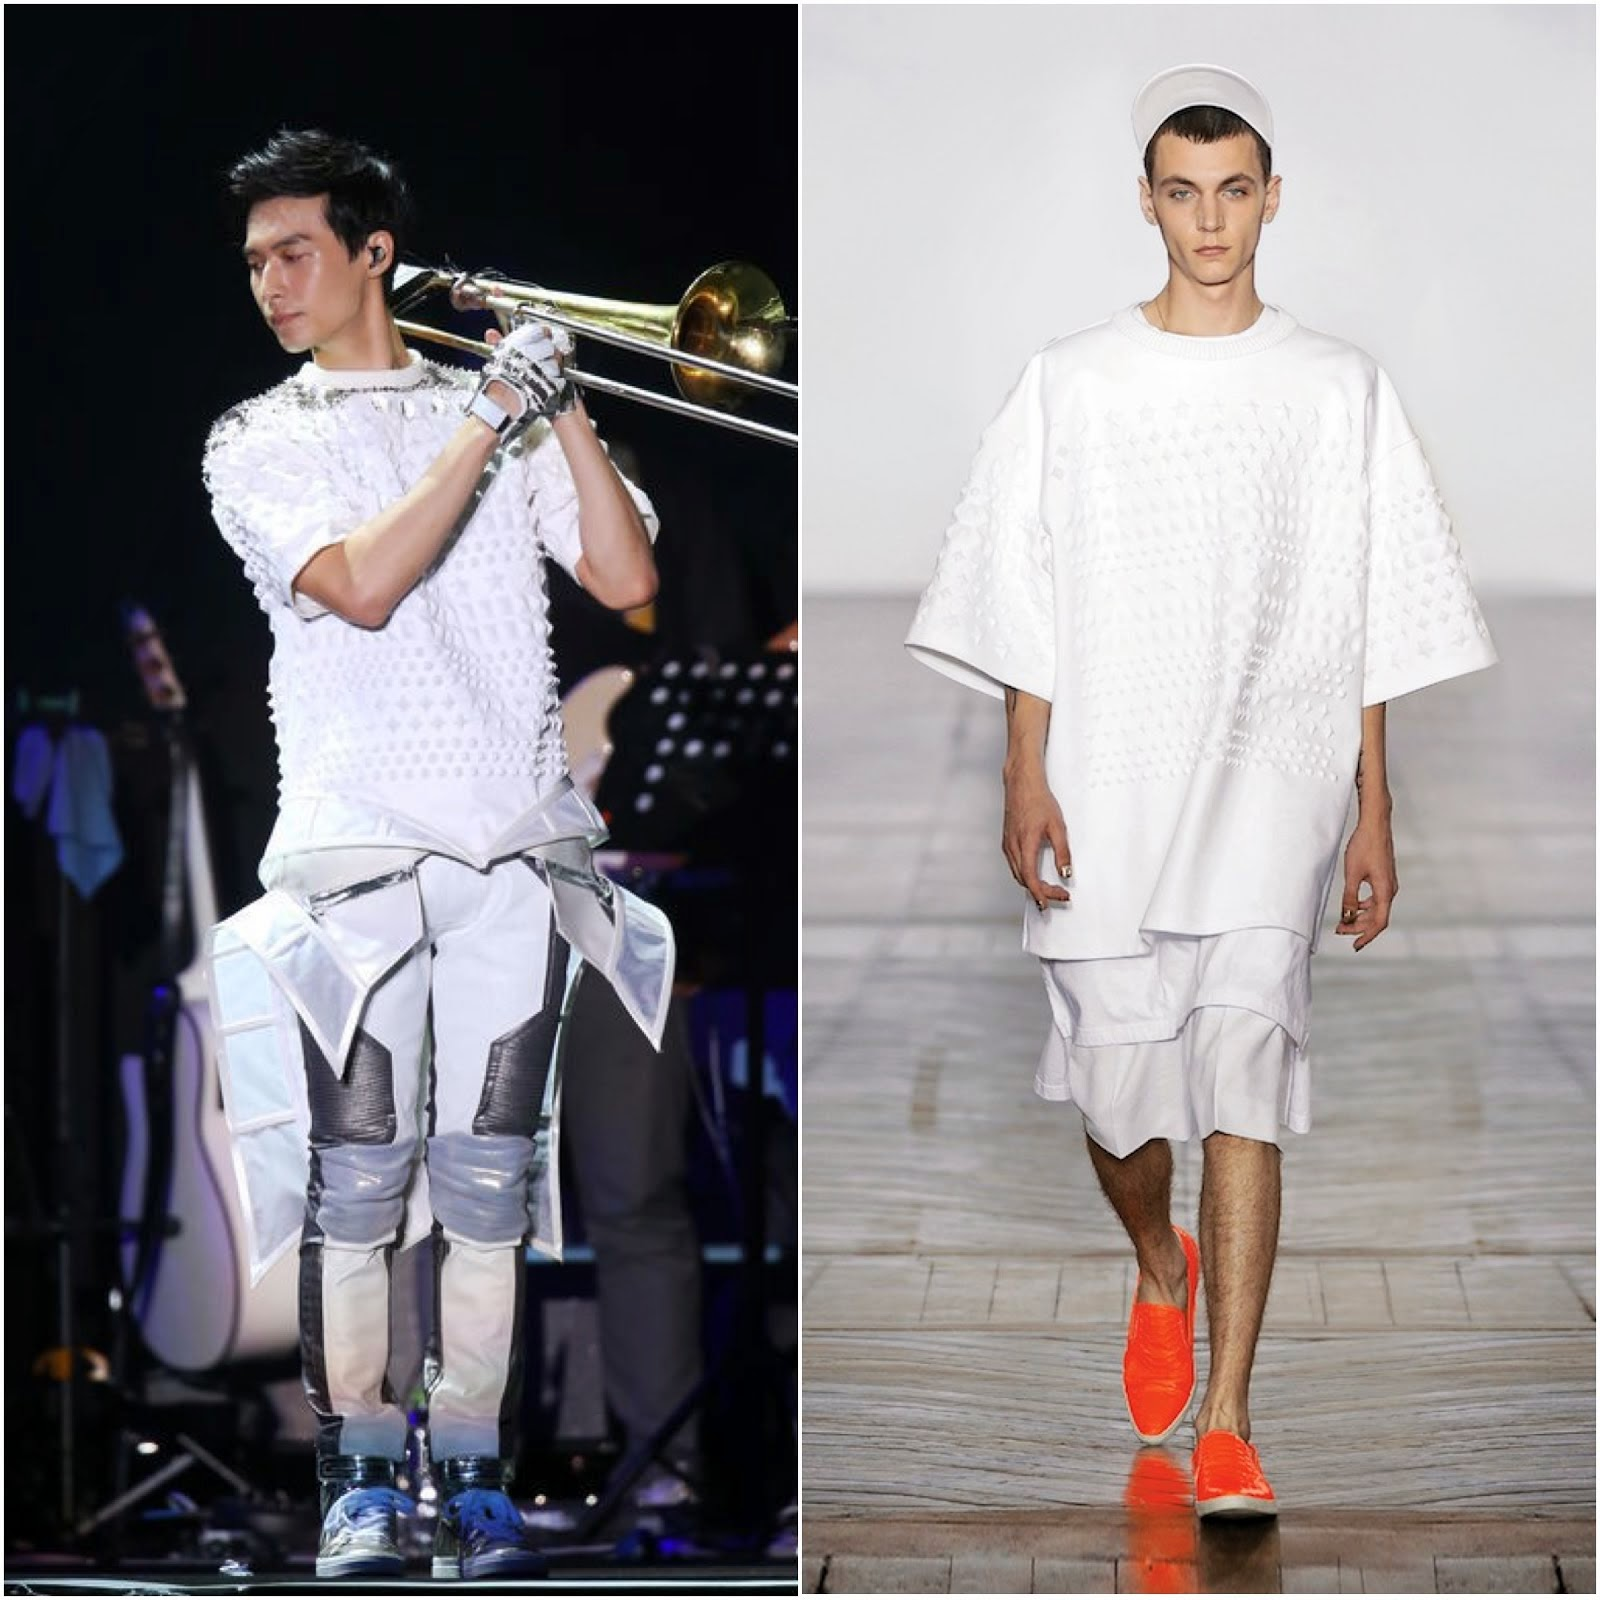 00O00 Menswear Blog: Yen-J [严爵] in Juun.J, Balmain and Givenchy - Taiwan concert July 2013 严爵首次站上小巨蛋开唱